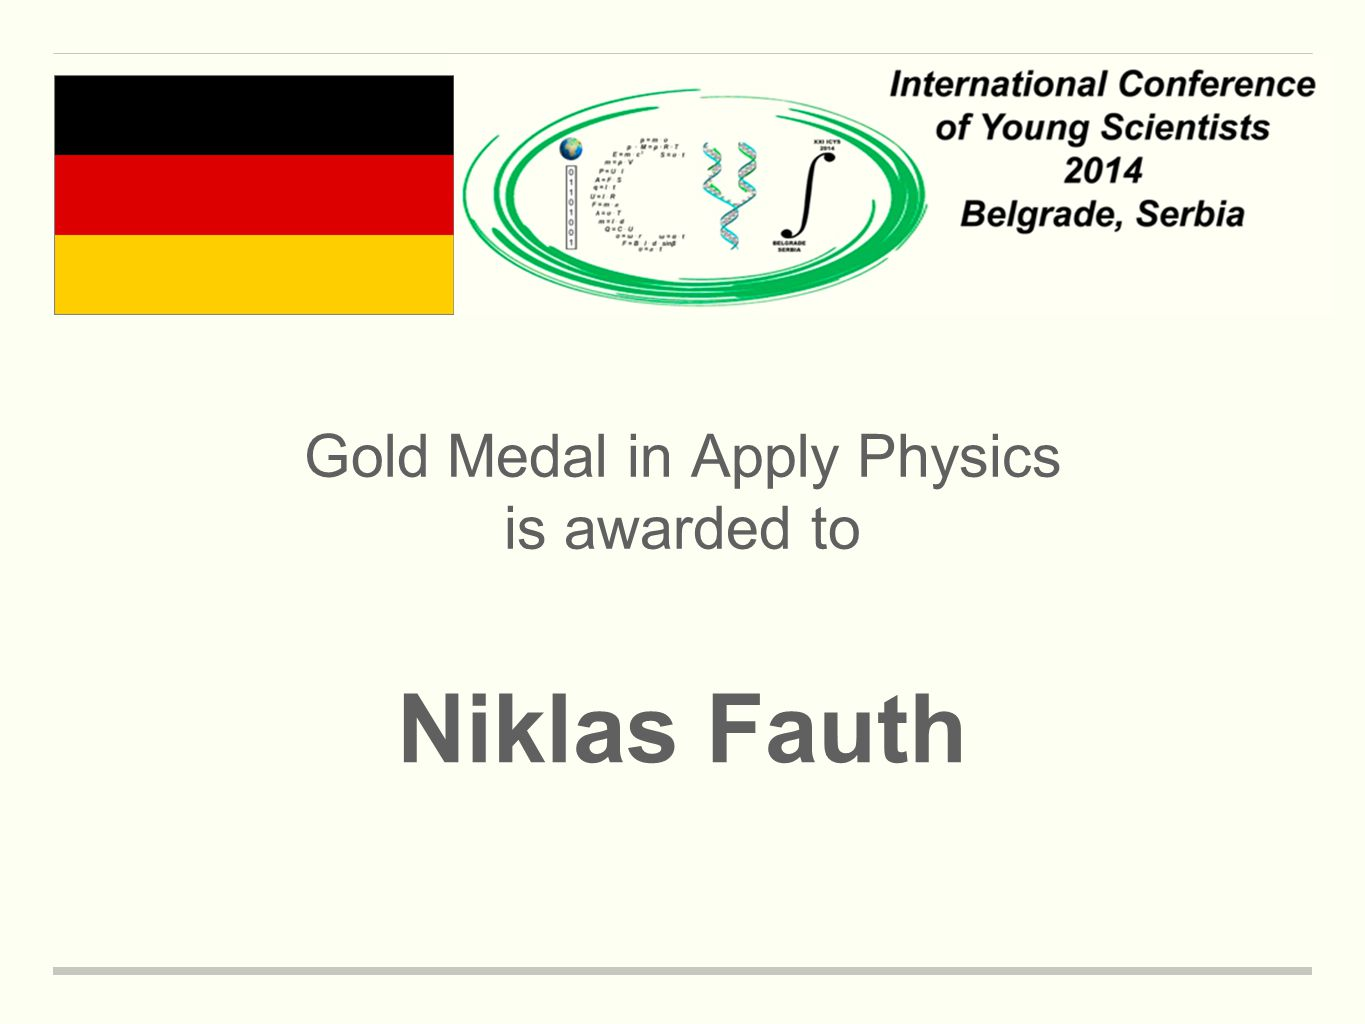 Gold Medal in Apply Physics is awarded to Niklas Fauth